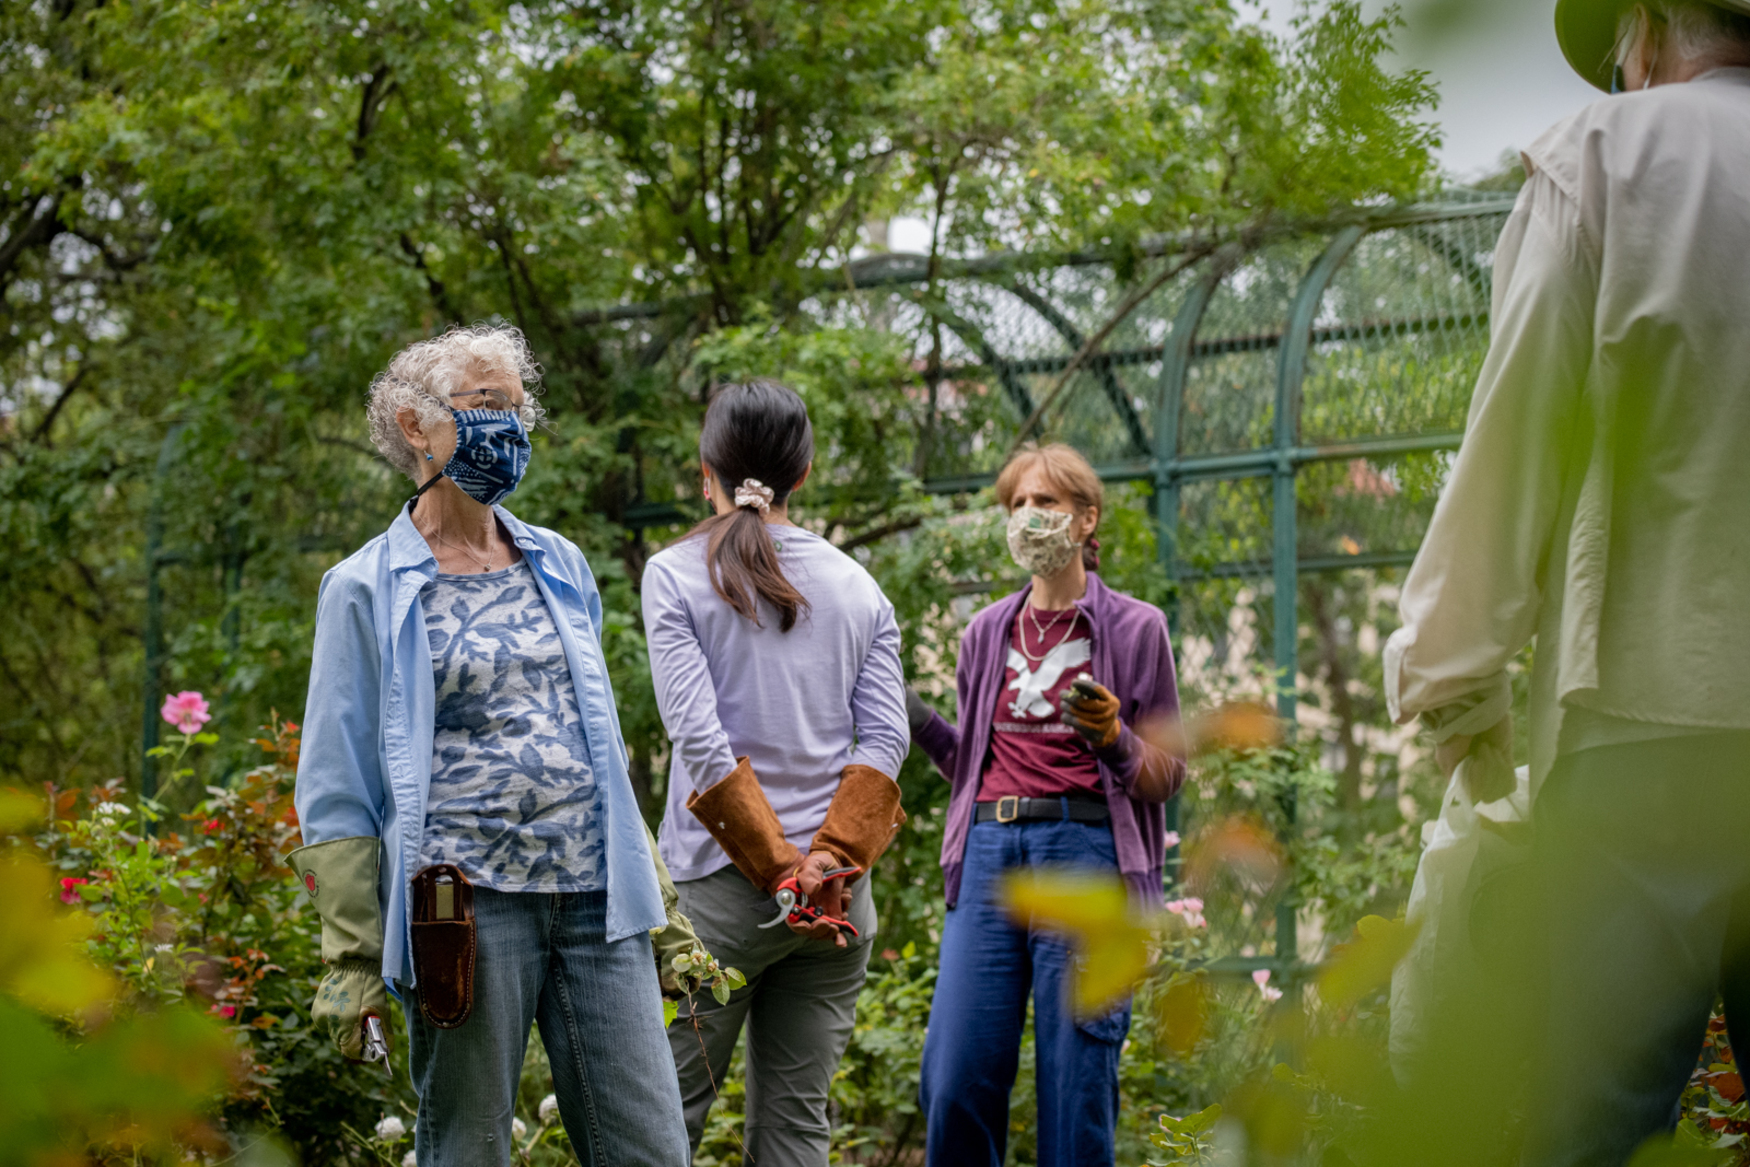 gardeners with masks on